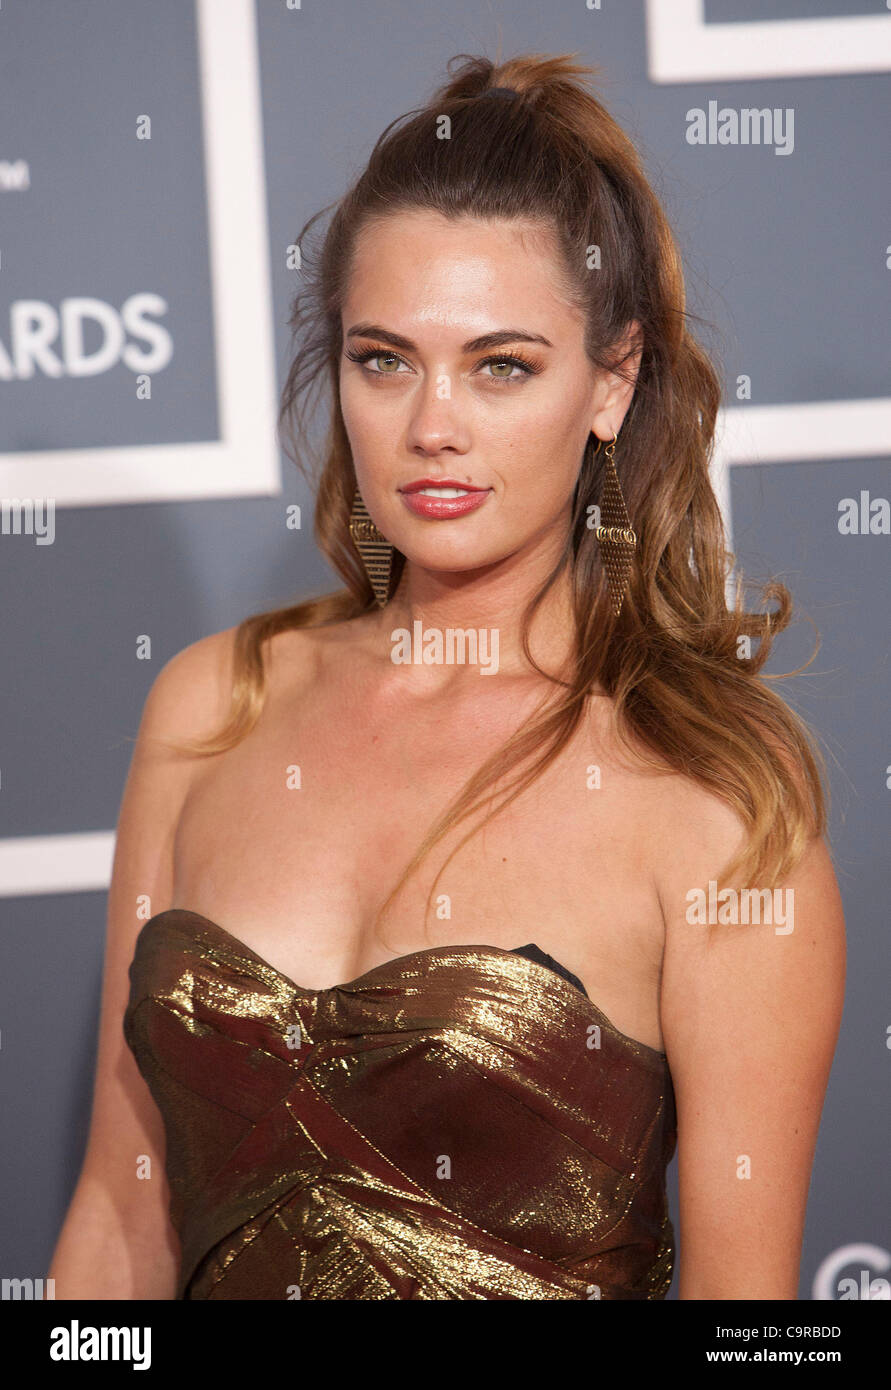 8dce8d43416d ... cc sheffield on the red carpet of the 54th annual grammy awards at the  staples center ...